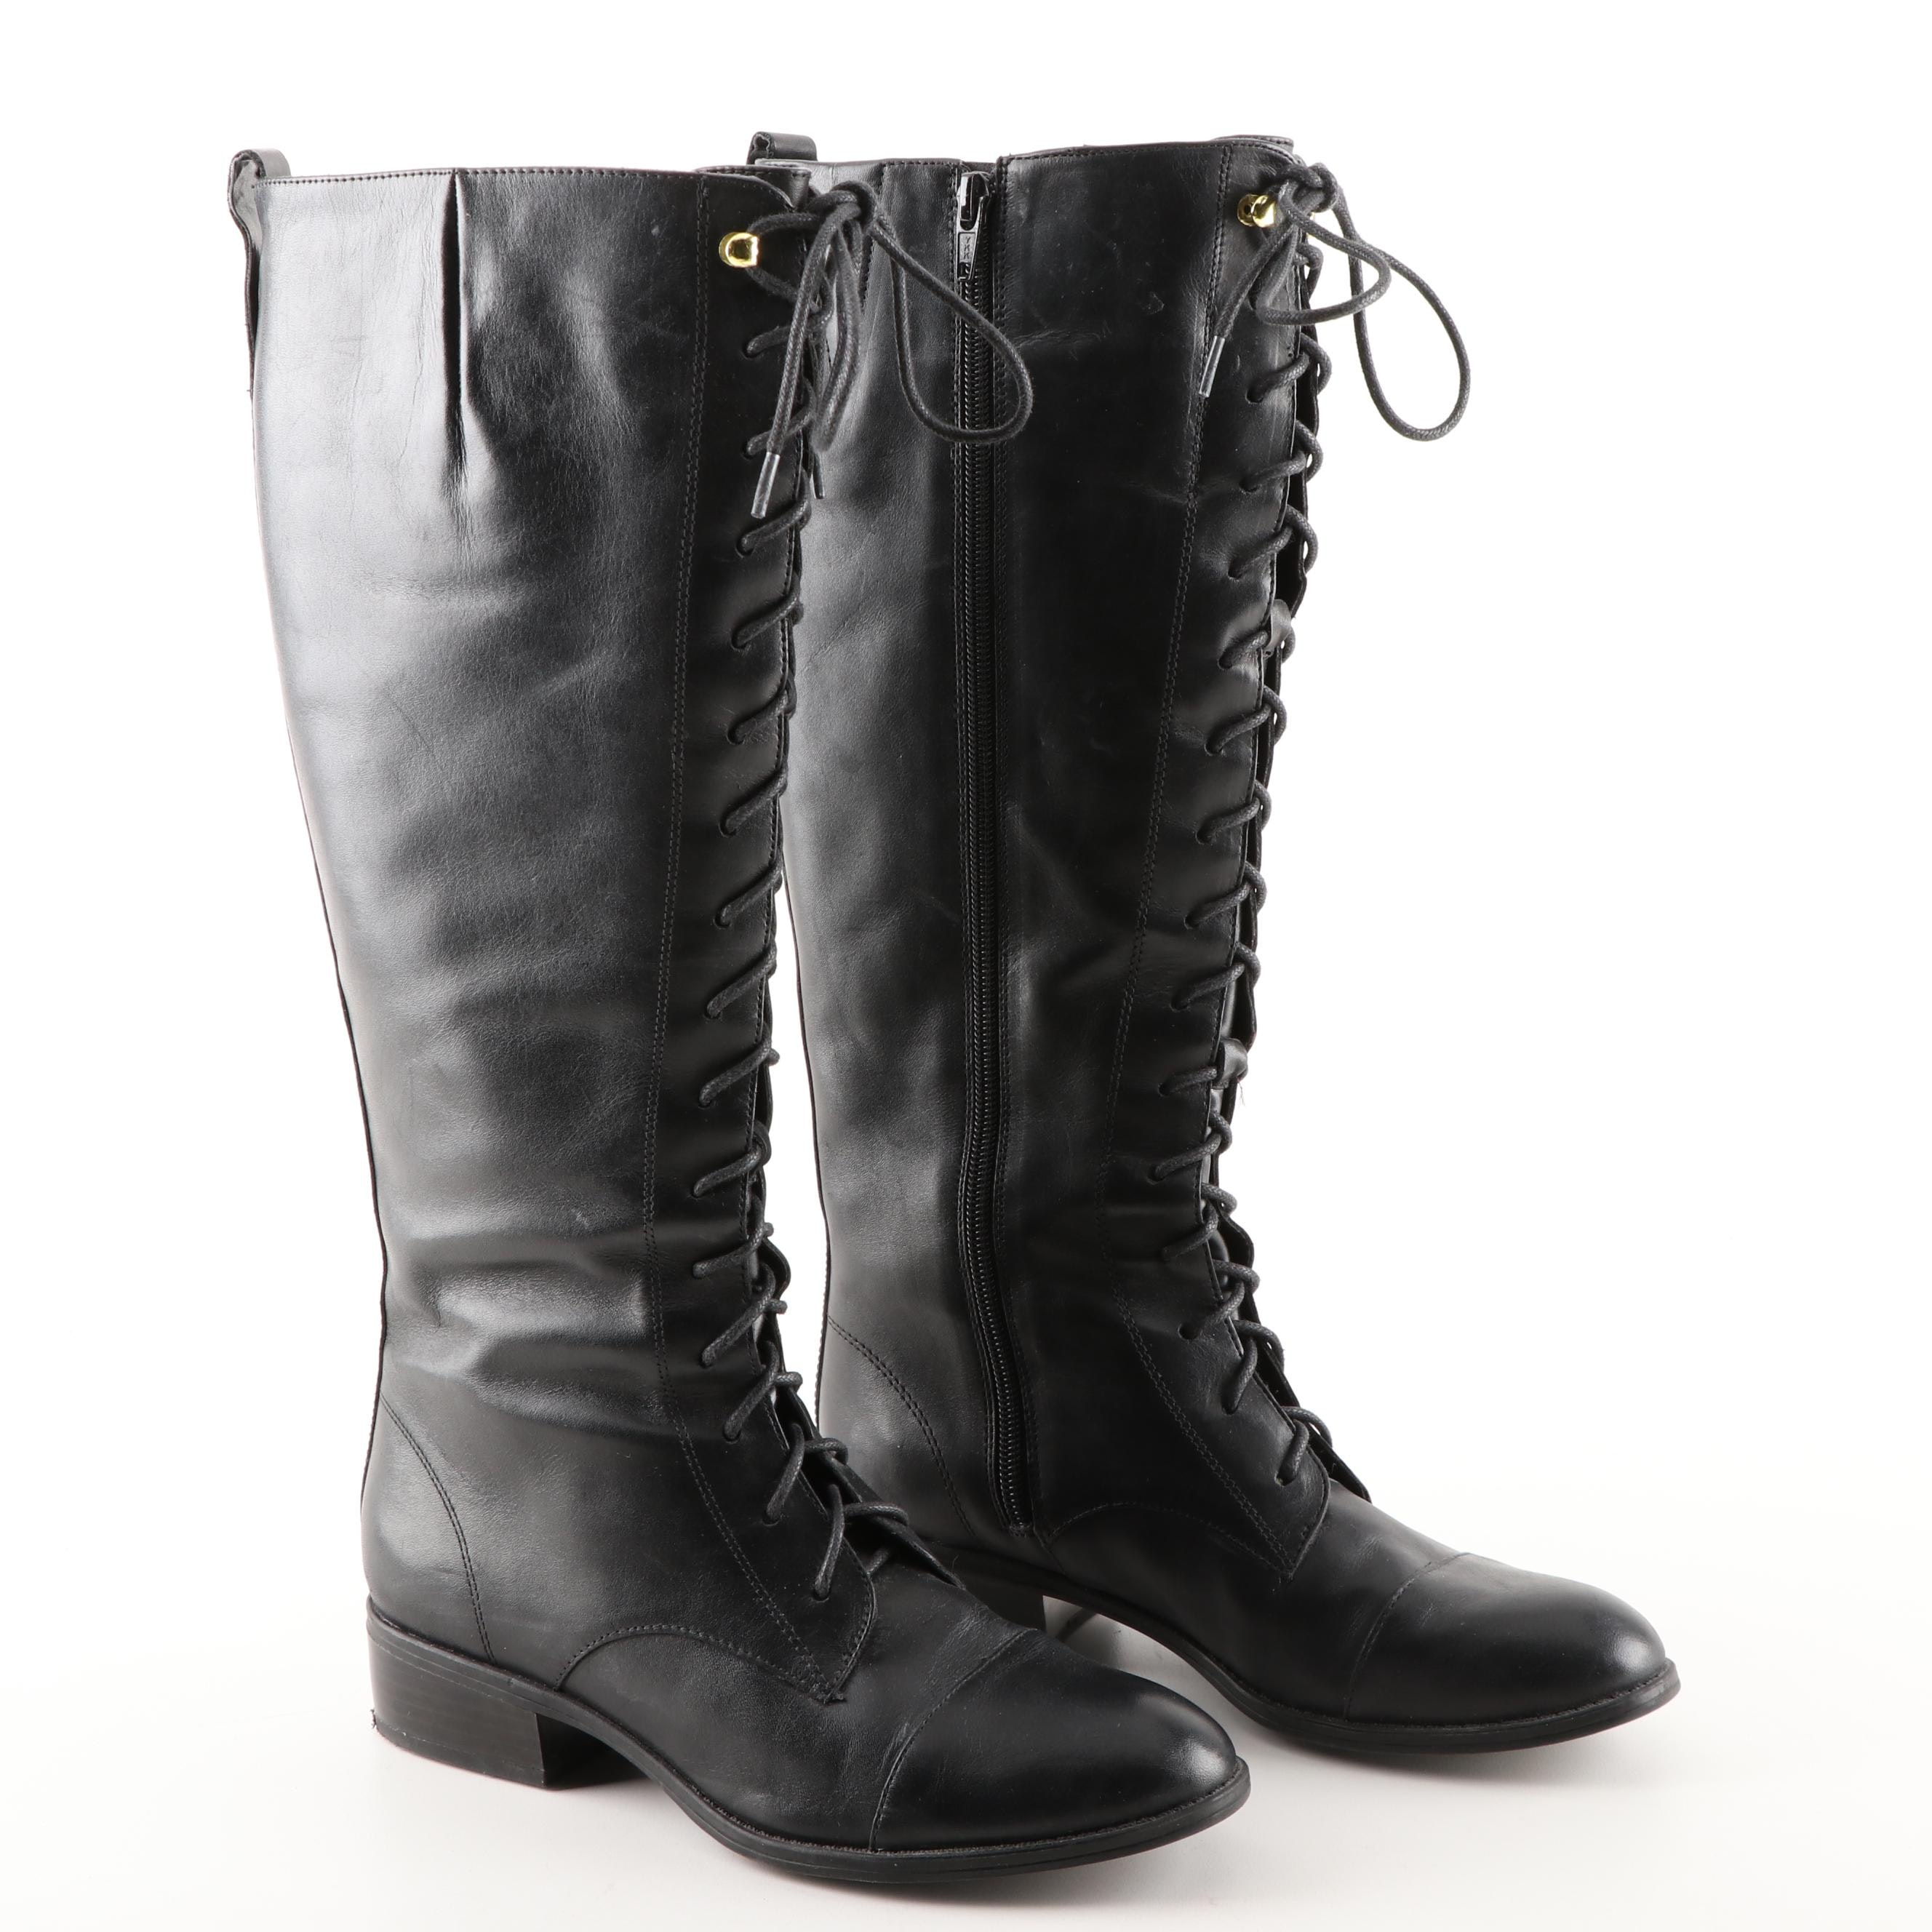 Women's Ralph Lauren Black Leather Martina Lace-Up Boots